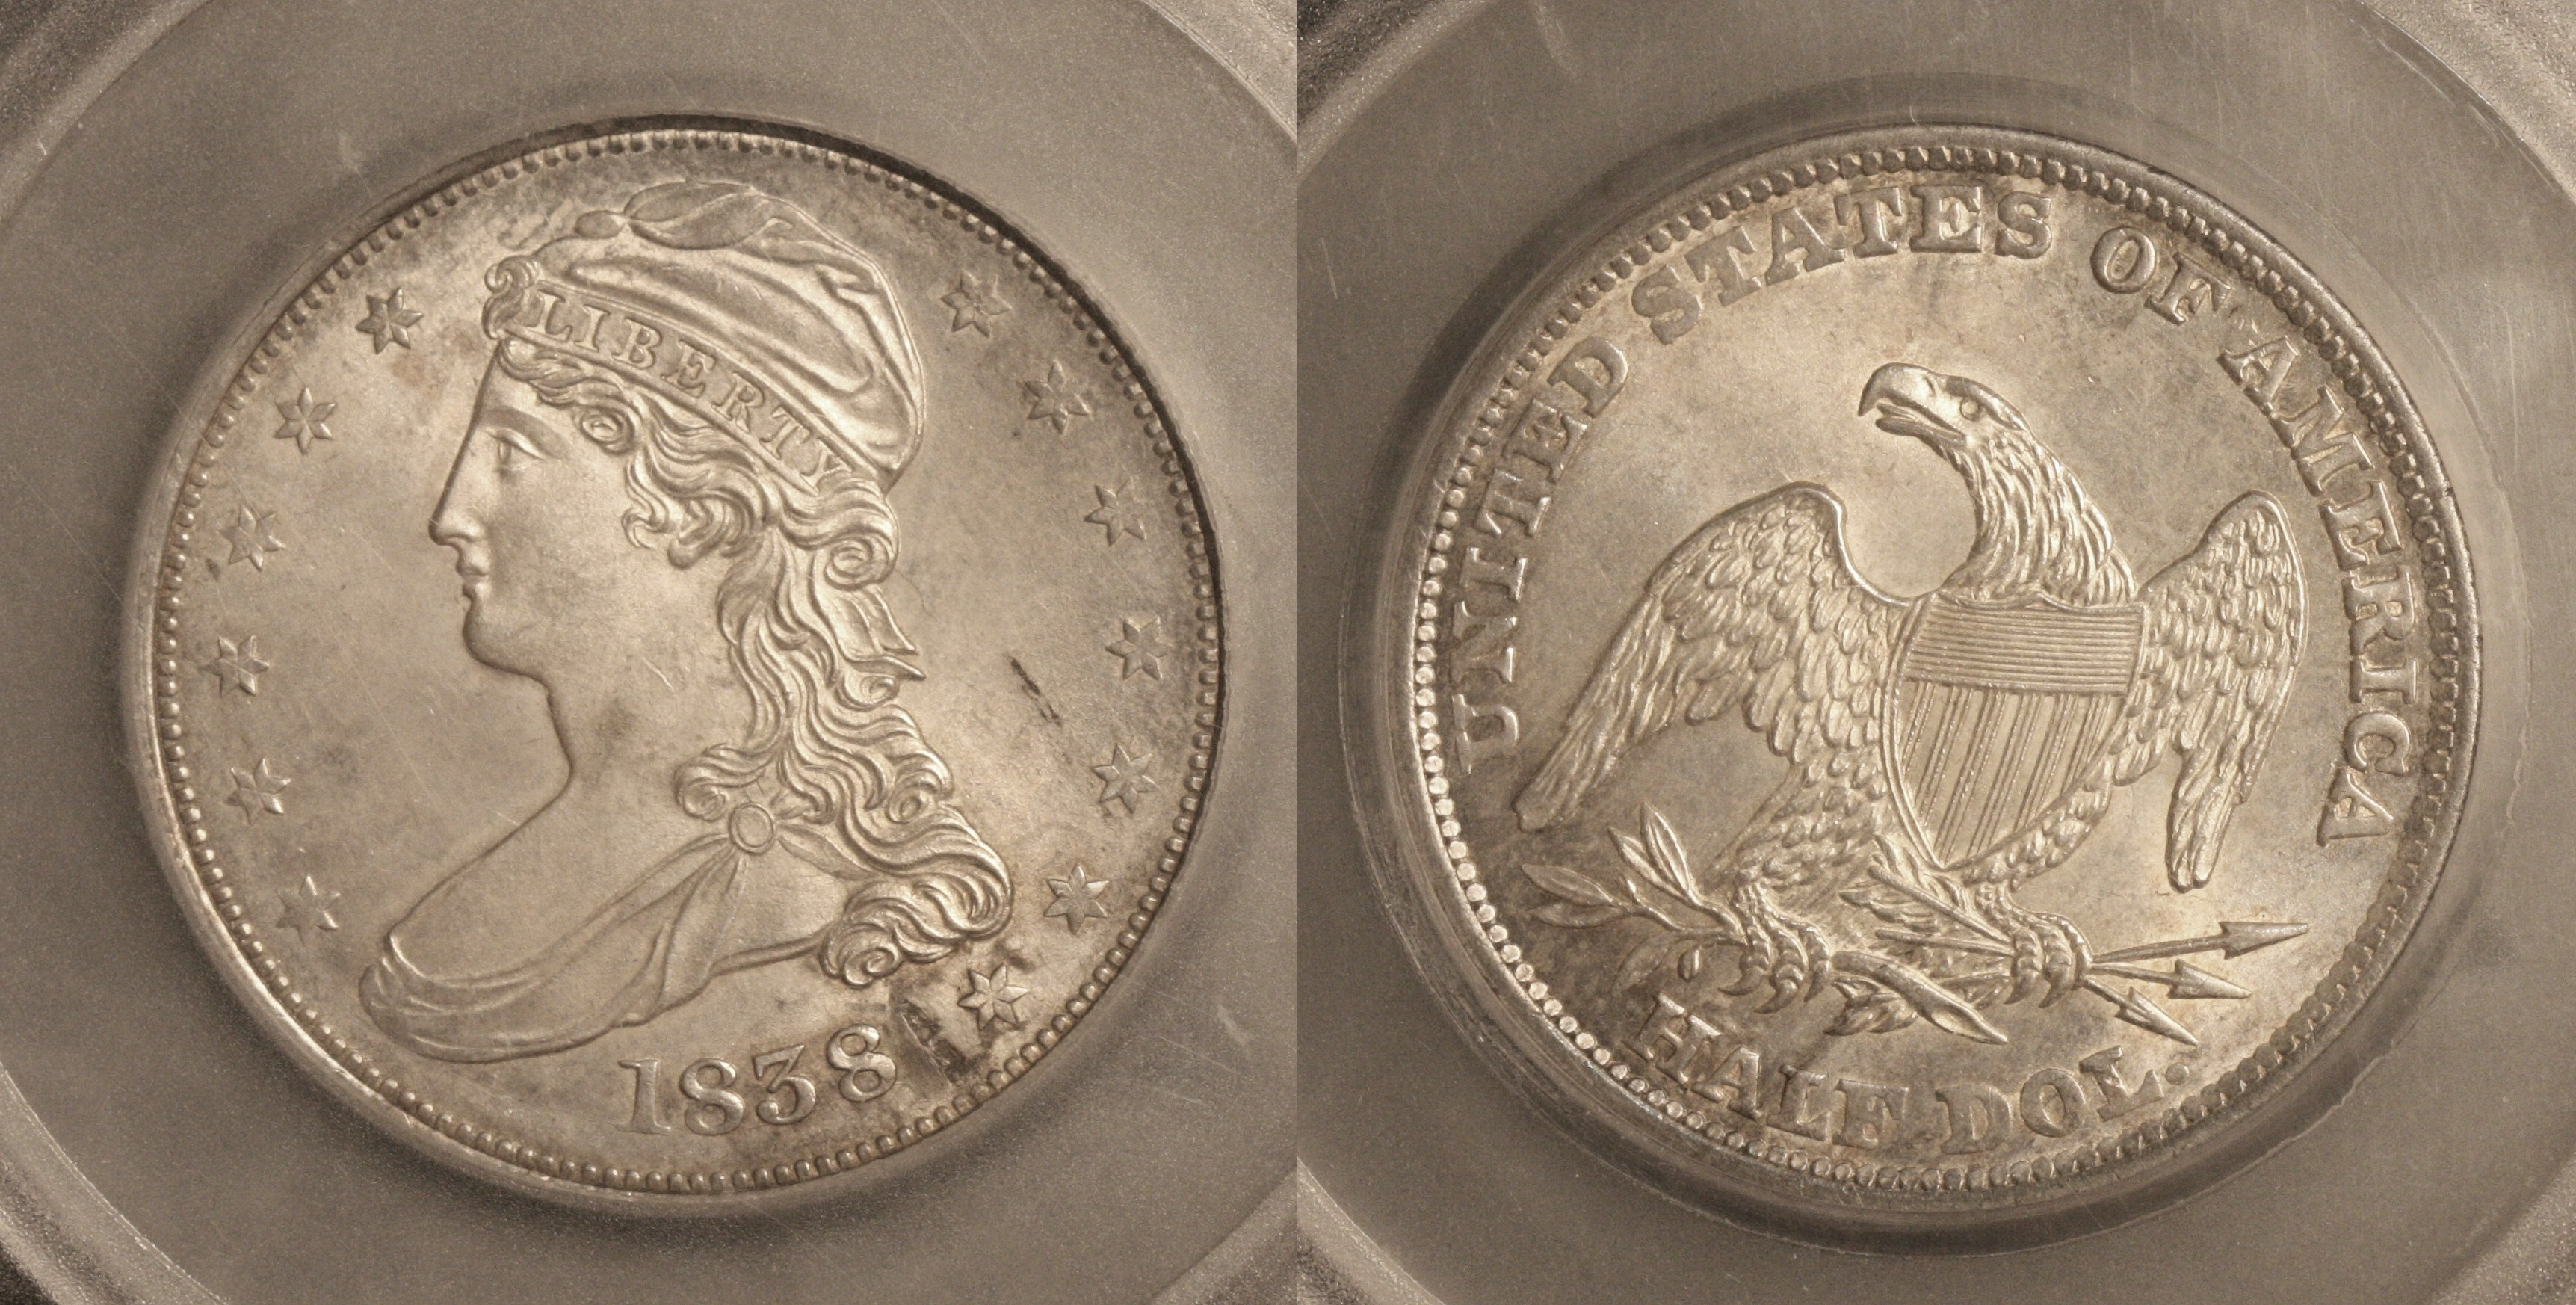 1838 Reeded Edge Capped Bust Half Dollar SEGS MS-63 camera